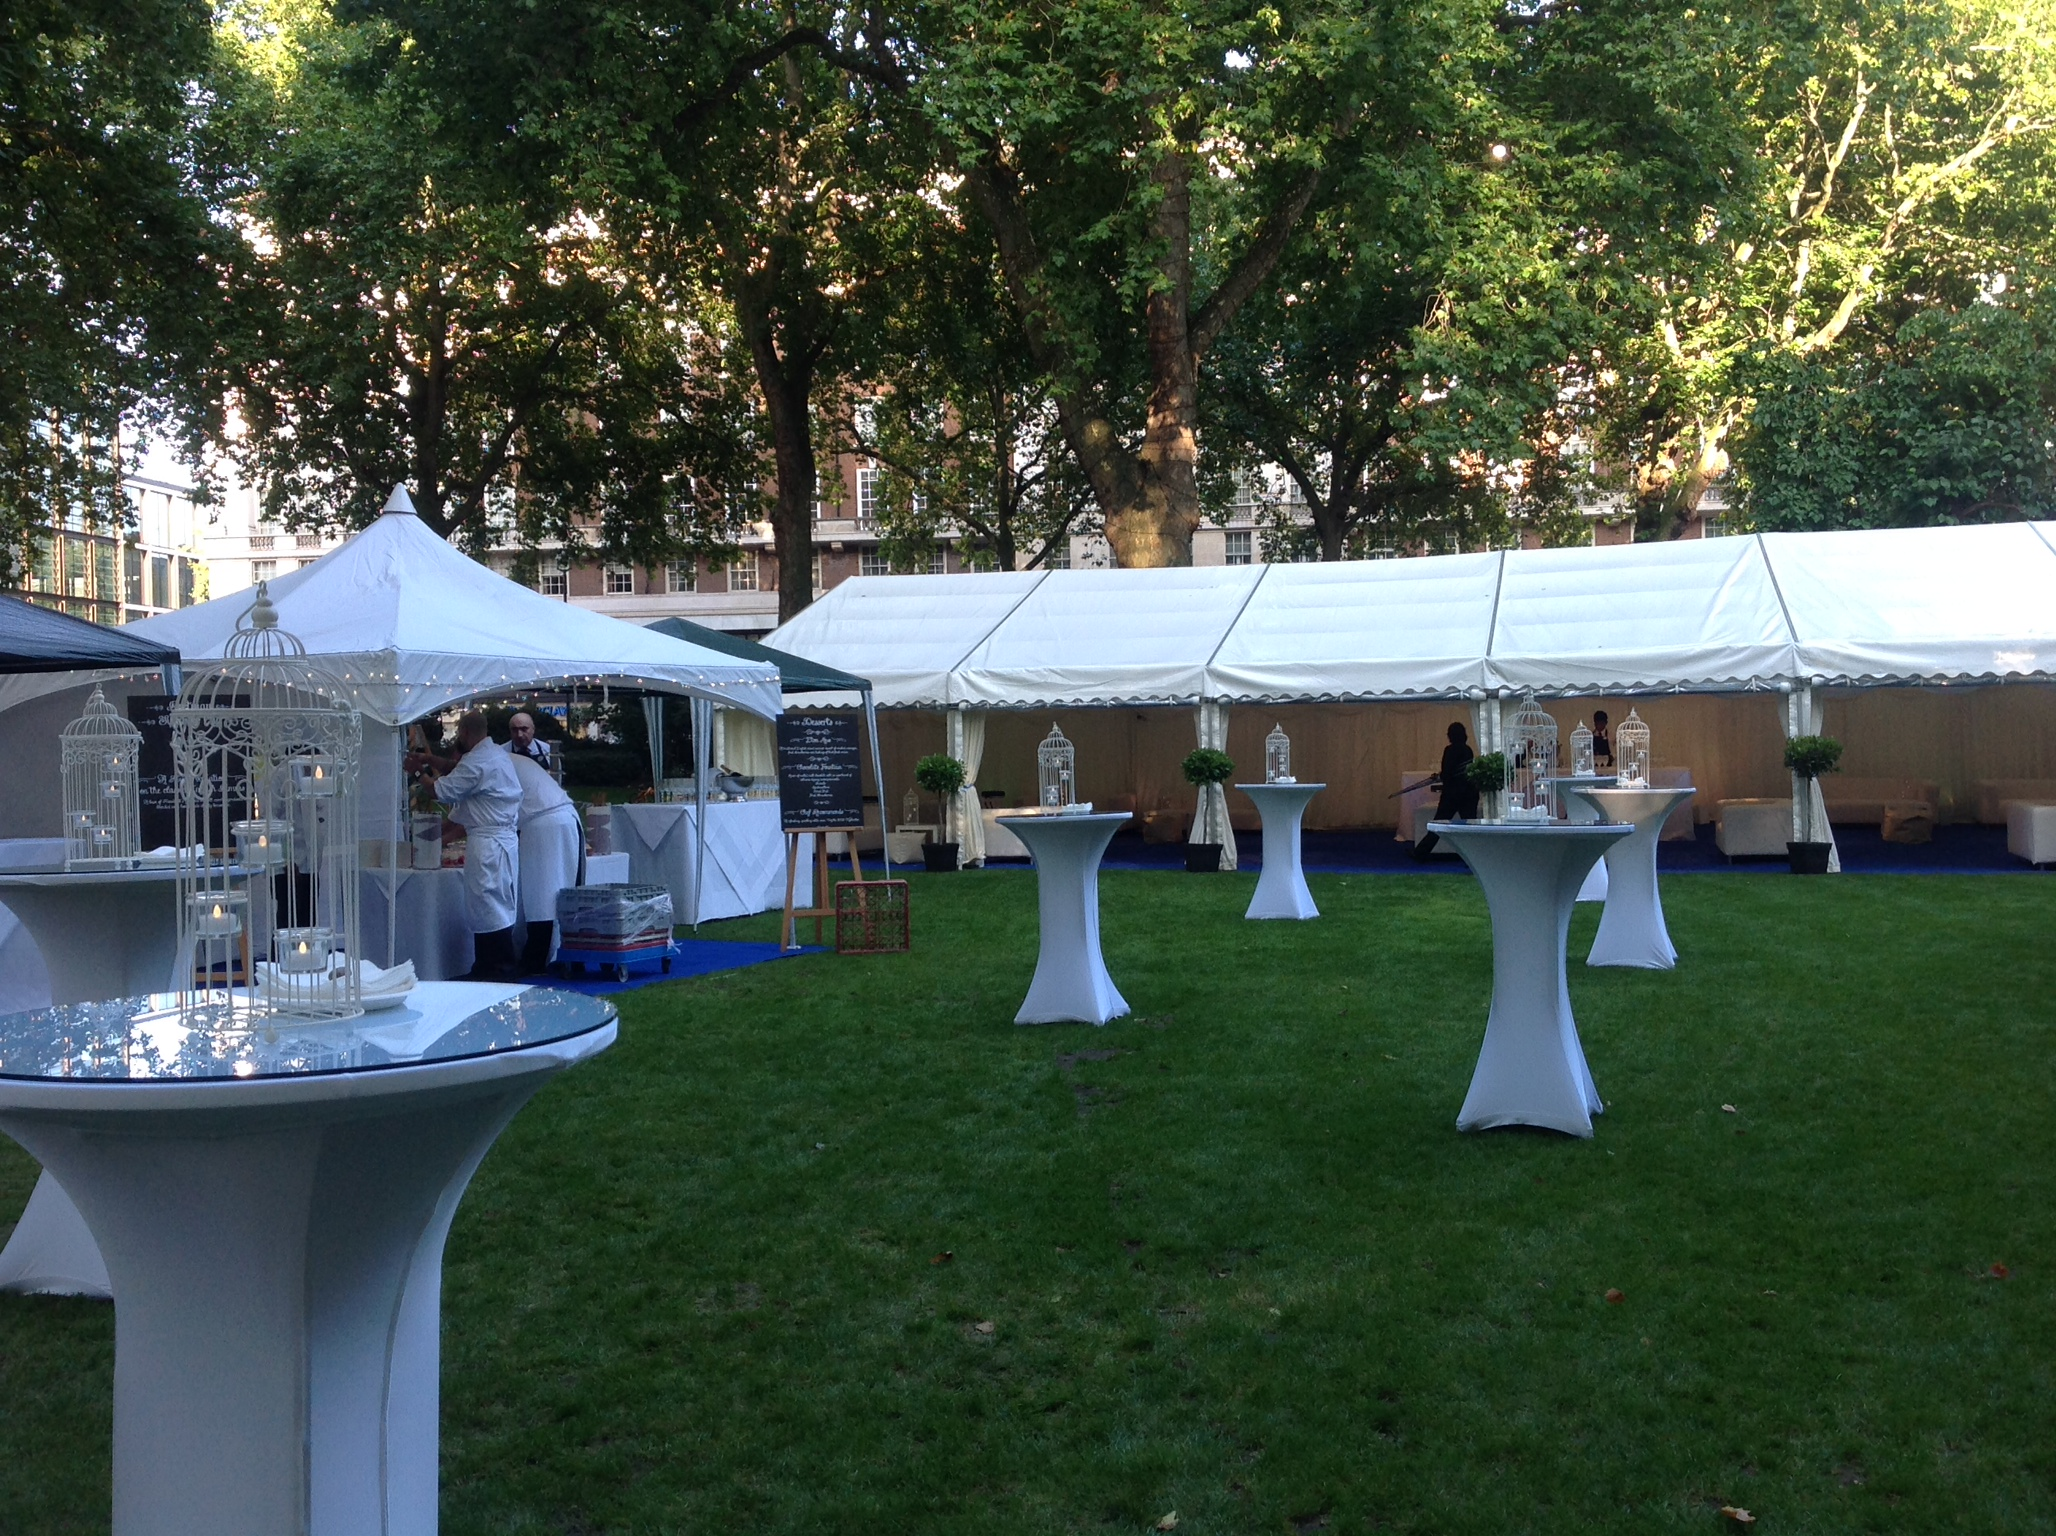 Garden party marquee for 500 attendees